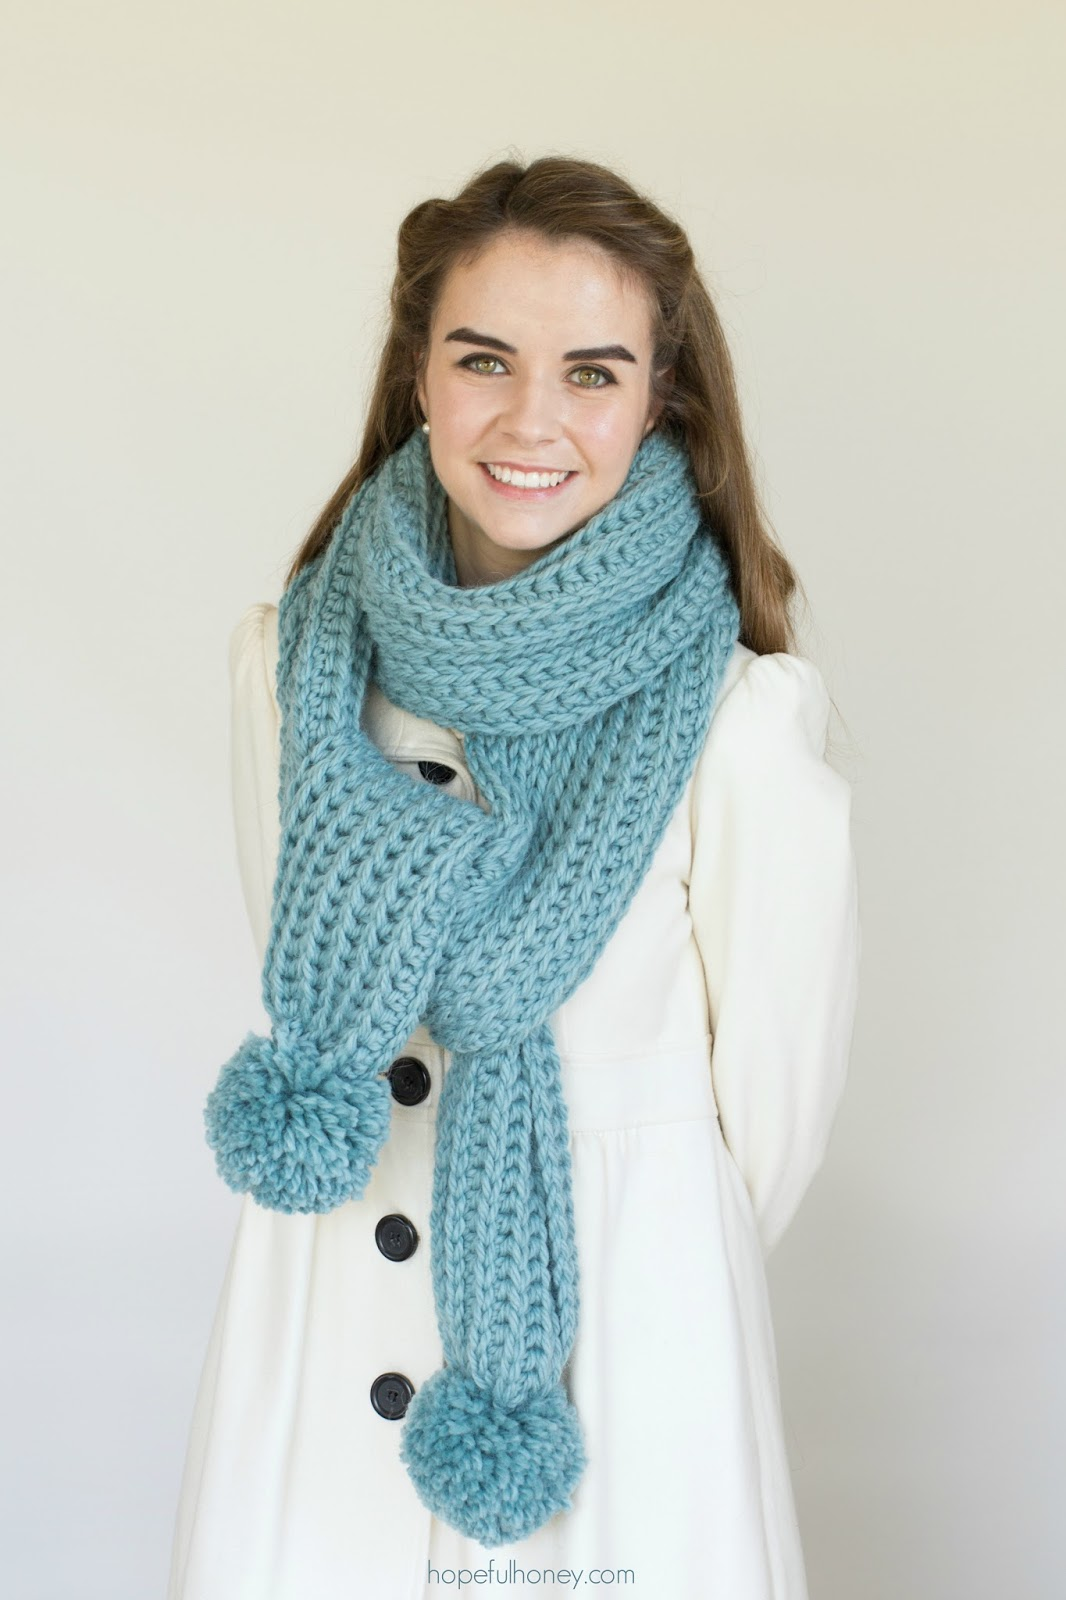 Knitting Pattern Ribbed Scarf : Hopeful Honey Craft, Crochet, Create: Himalayan Mist ...